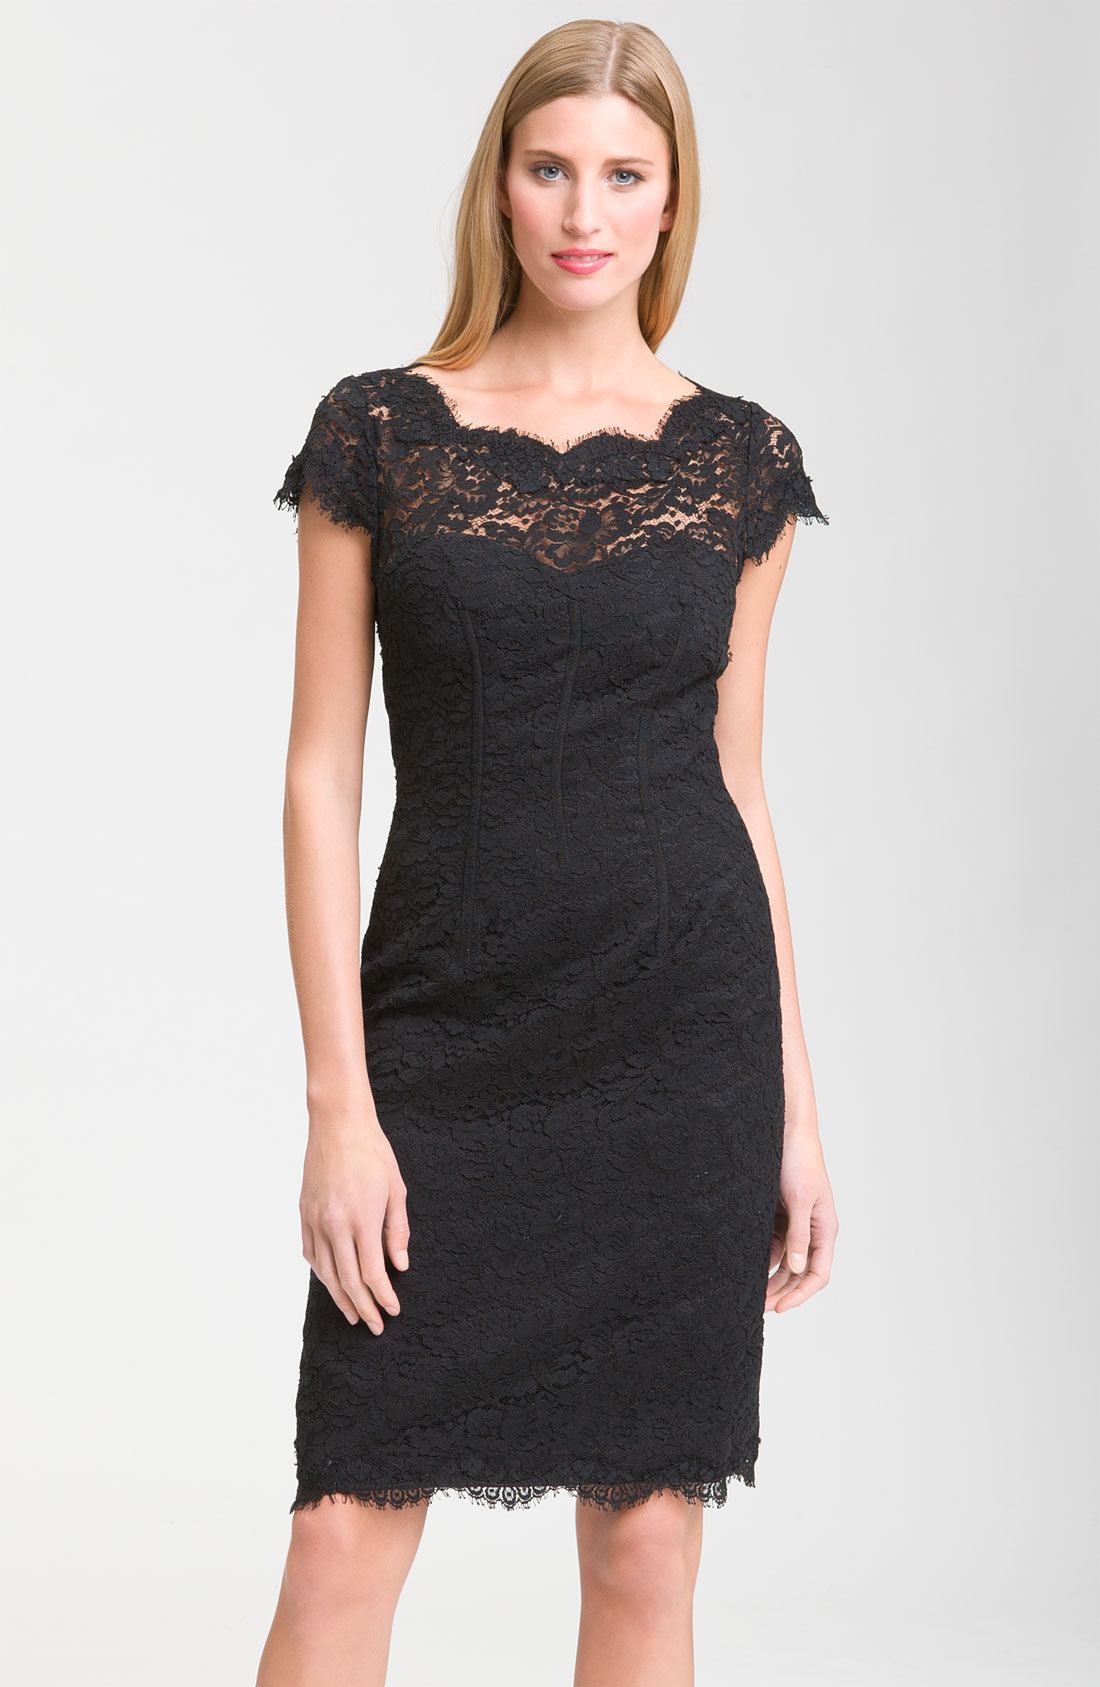 monique lhuillier bridesmaids lace from basadresscom dress With lace dresses for wedding guests